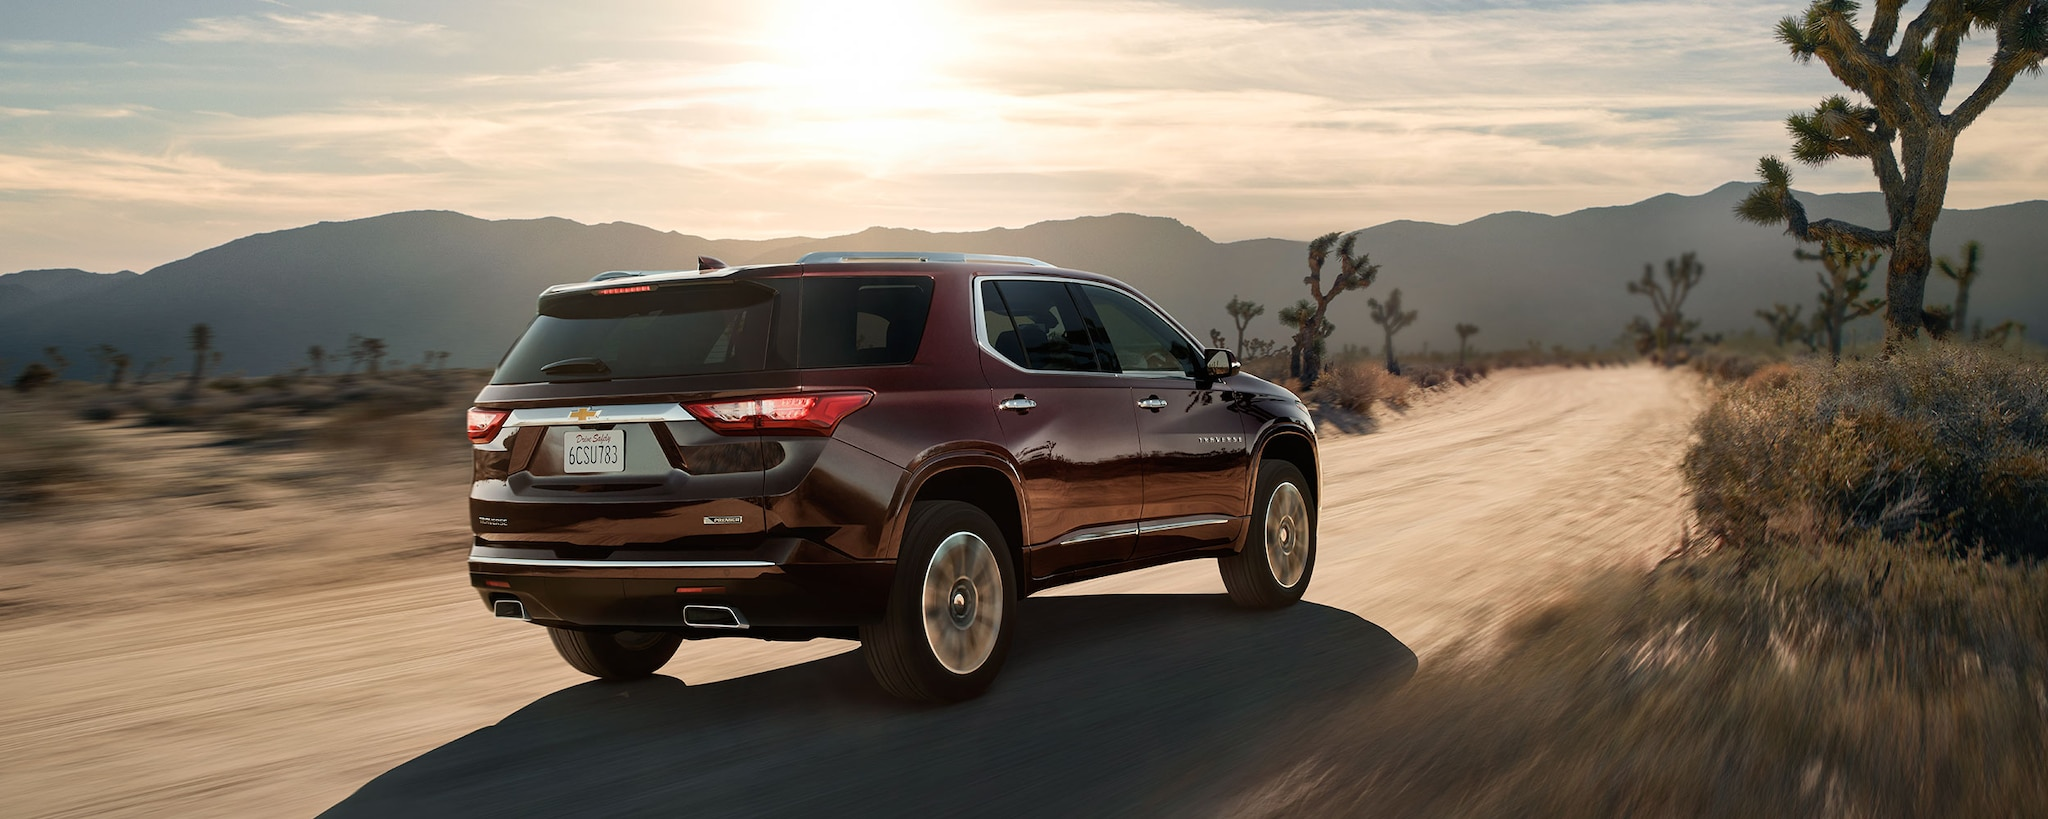 2018 Traverse Midsize SUV Performance